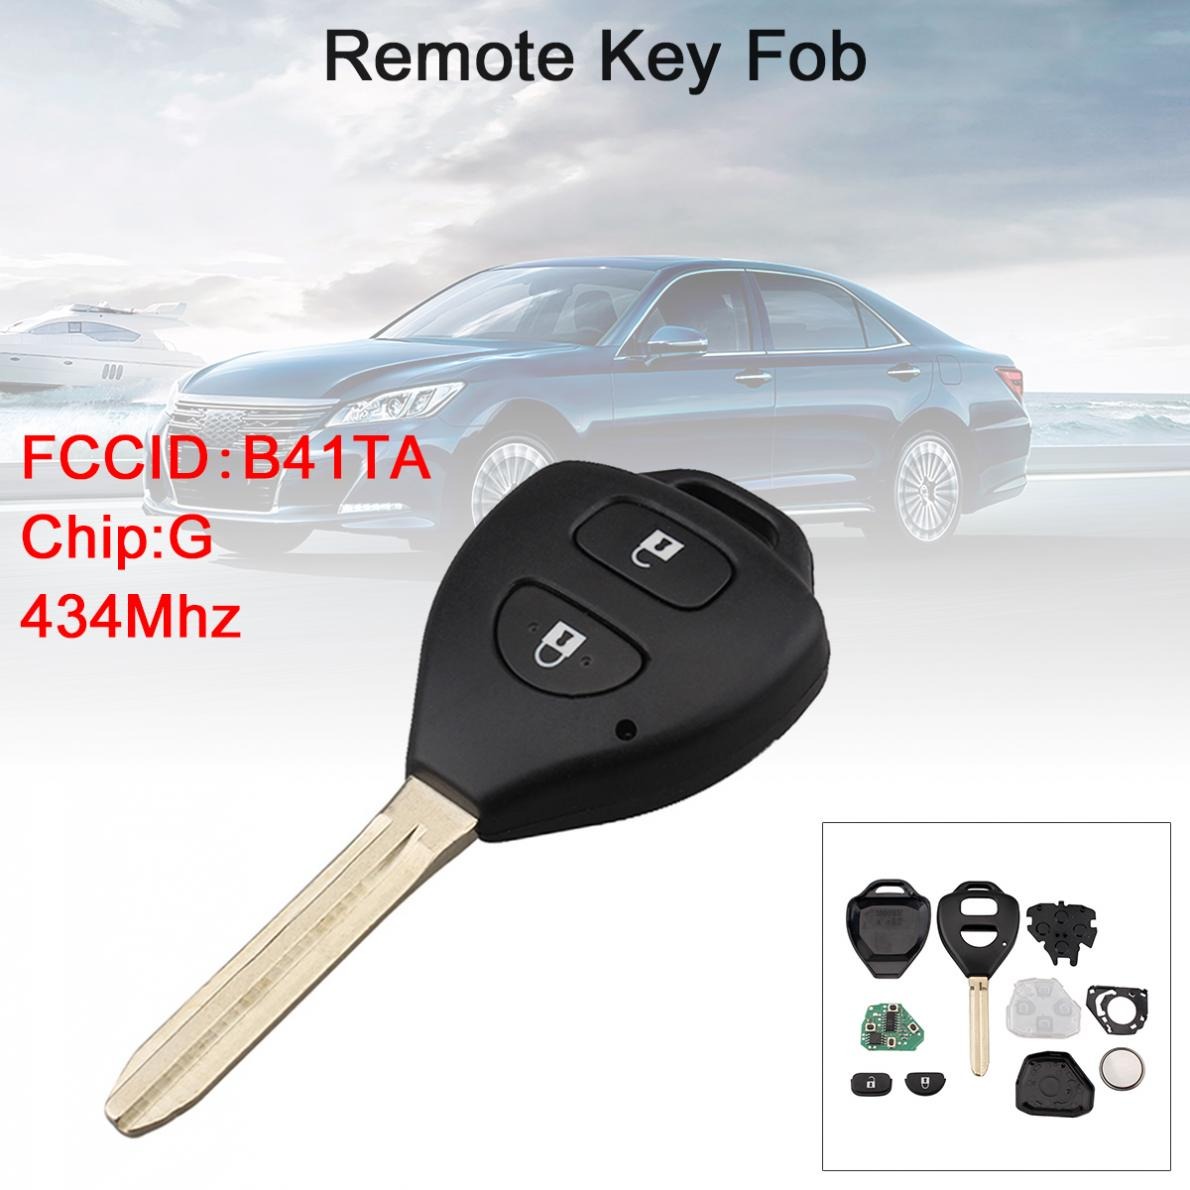 434Mhz 2 Buttons Car <font><b>Remote</b></font> <font><b>Key</b></font> Fob with G Chip B41TA Fit for <font><b>Toyota</b></font> Hilux /<font><b>Yaris</b></font> 2009 - 2015 image